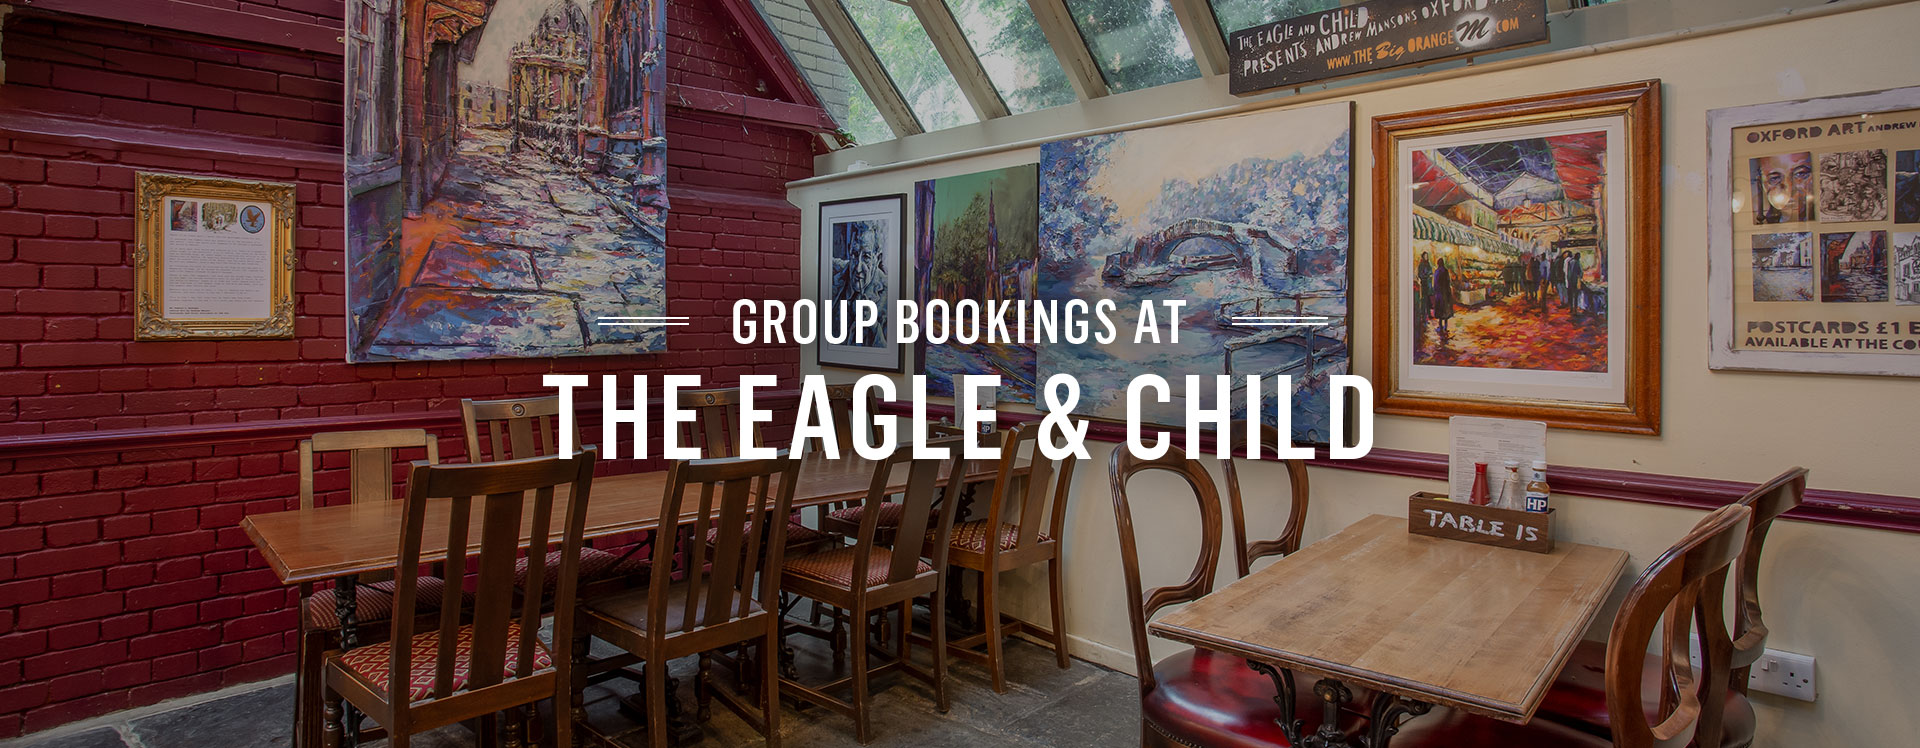 Group Bookings at The Eagle and Child